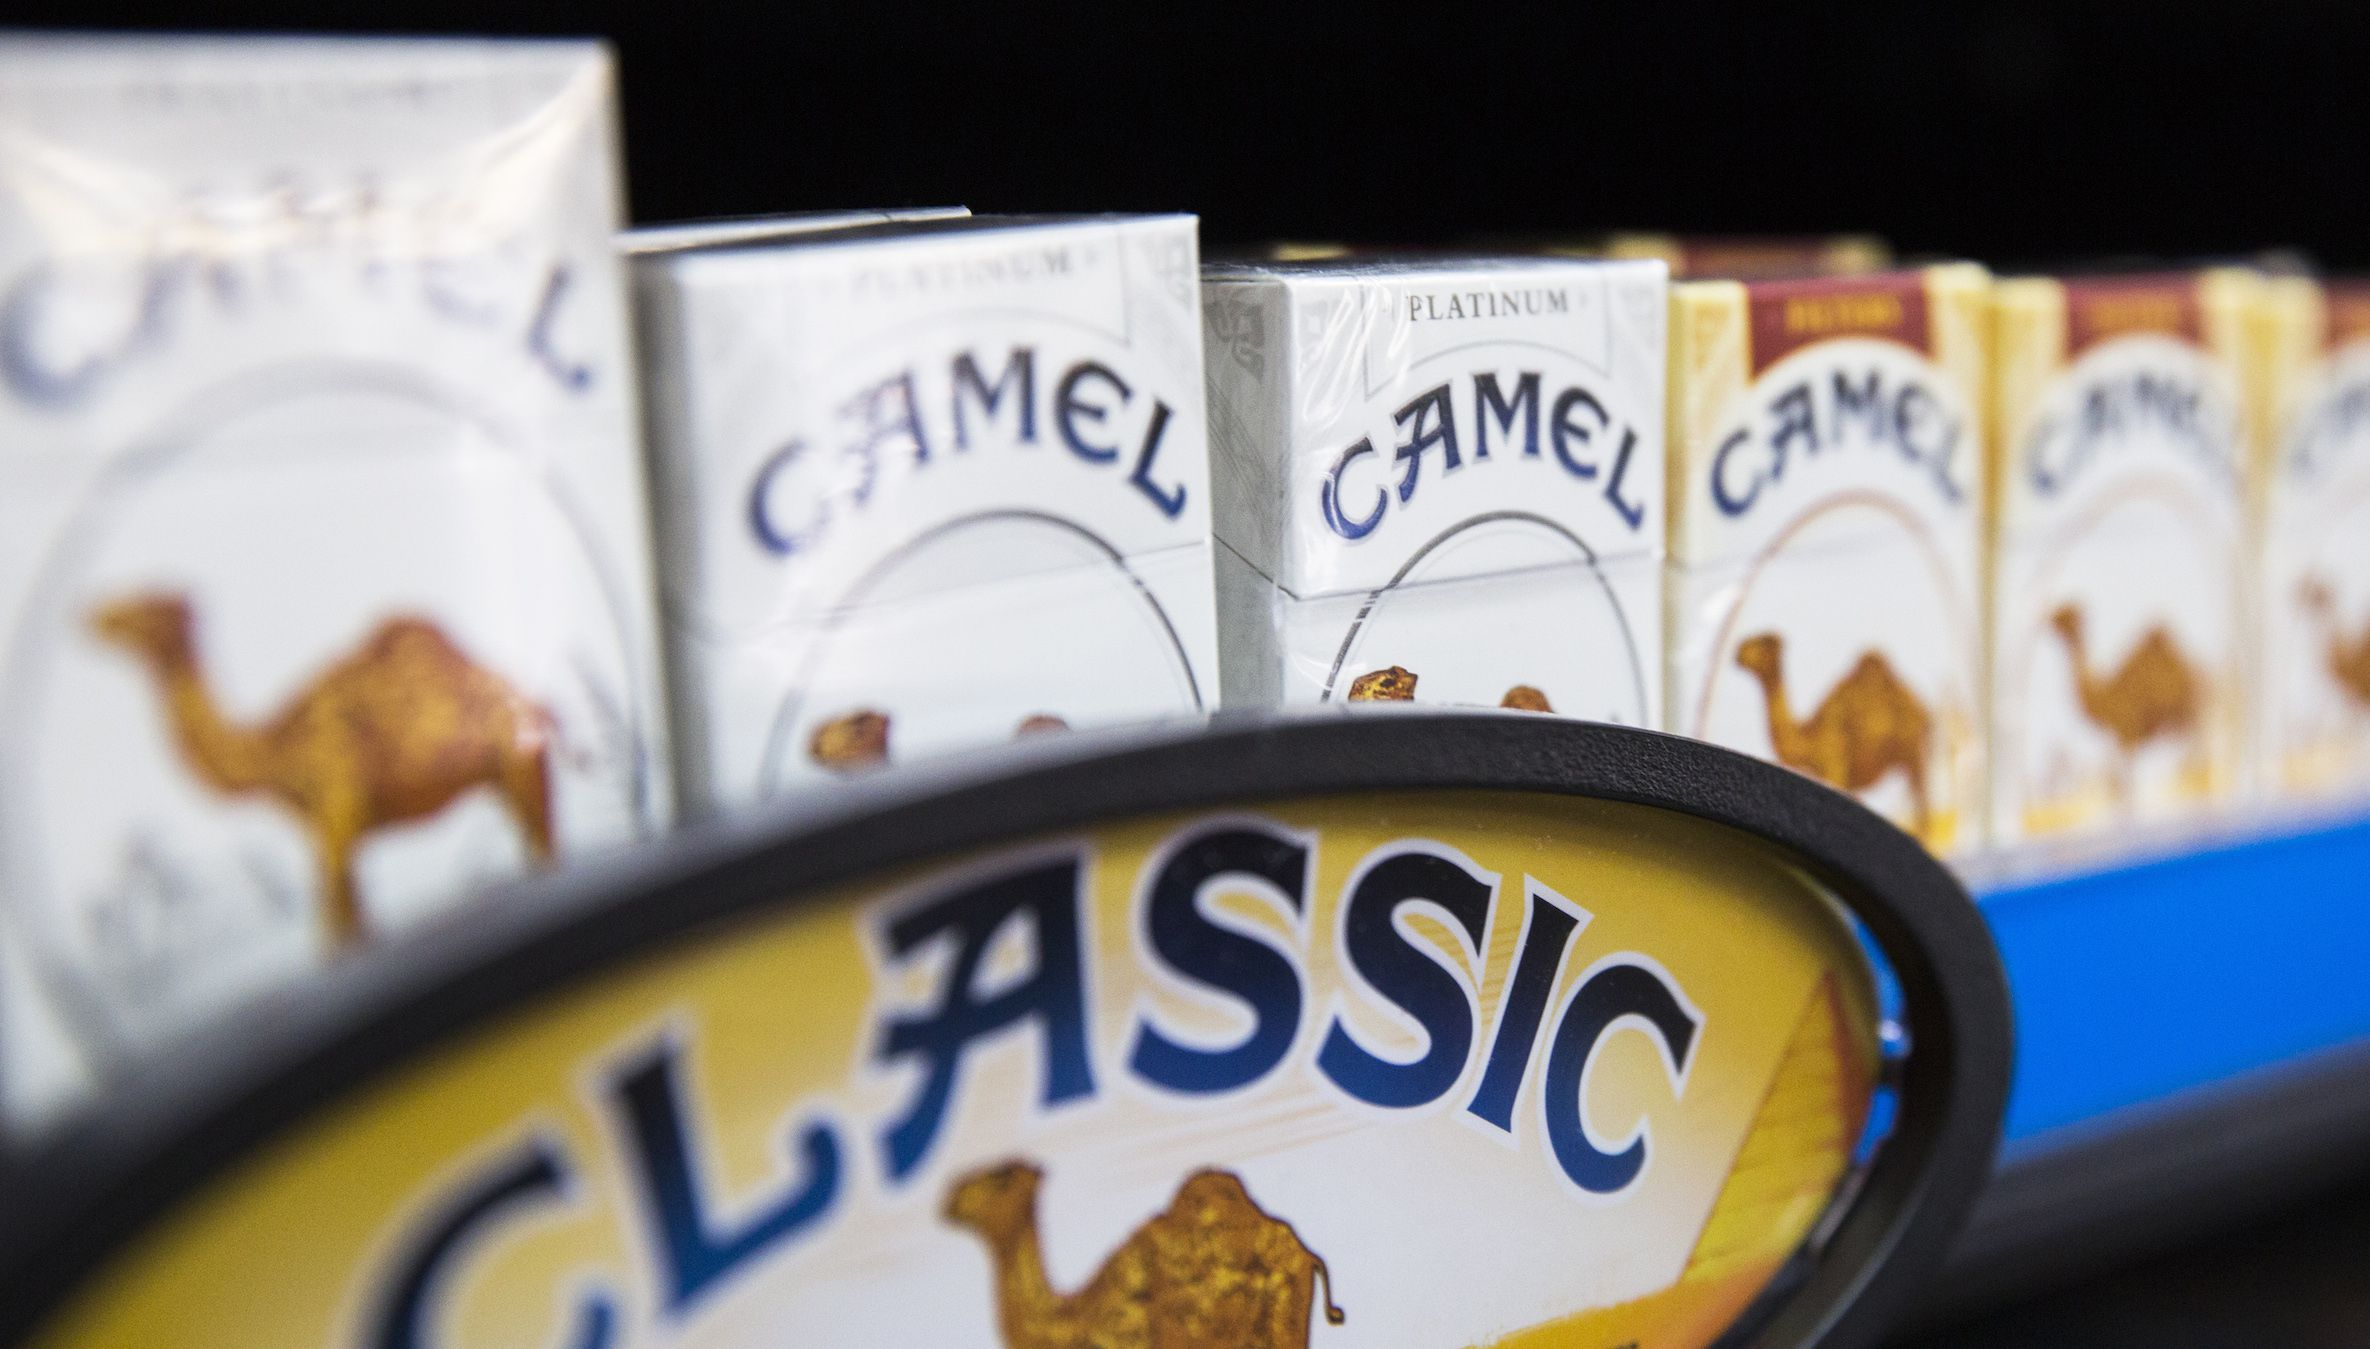 Camel cigarettes are stacked on a shelf inside a tobacco store in New York July 11, 2014. U.S. cigarette maker Reynolds American Inc is in talks to acquire rival Lorillard Inc in a multi-billion dollar deal that would reshape one of the world's biggest and most profitable tobacco markets, the companies said on Friday. In a statement confirming what people familiar with the matter previously told Reuters, Reynolds, No.2 player in the United States with brands including Camel and Pall Mall, said the talks were consistent with its strategy of weighing options that would help boost shareholder value. Buying Lorillard, which had a stock market value of $22.9 billion on Thursday, would give Reynolds the leading U.S. menthol cigarette Newport and its leading e-cigarette blu.Buying Lorillard, which had a stock market value of $22.9 billion on Thursday, would give Reynolds the leading U.S. menthol cigarette Newport and its leading e-cigarette blu. REUTERS/Lucas Jackson (UNITED STATES - Tags: BUSINESS) - RTR3Y7FF